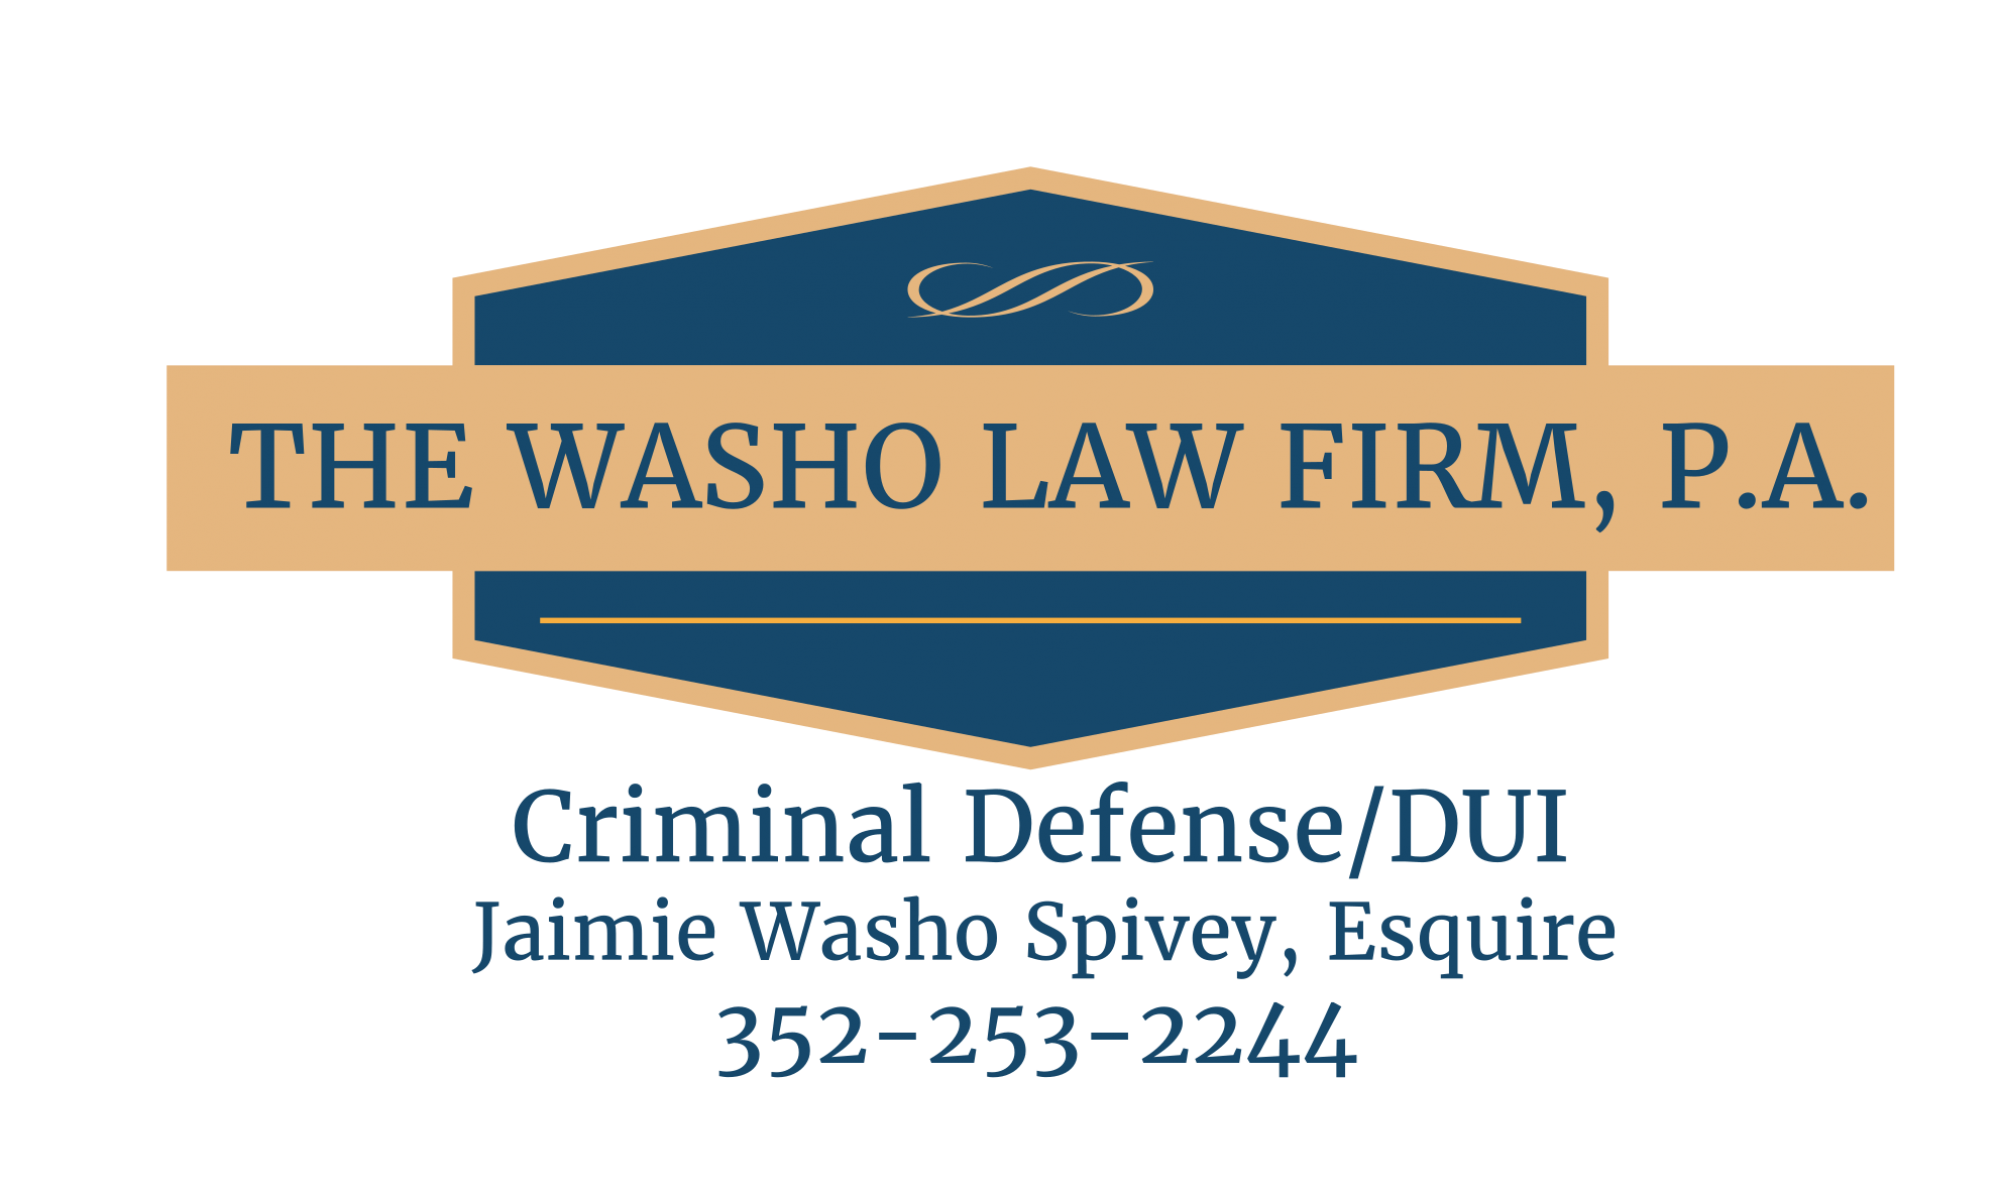 The Washo Law Firm, P.A.